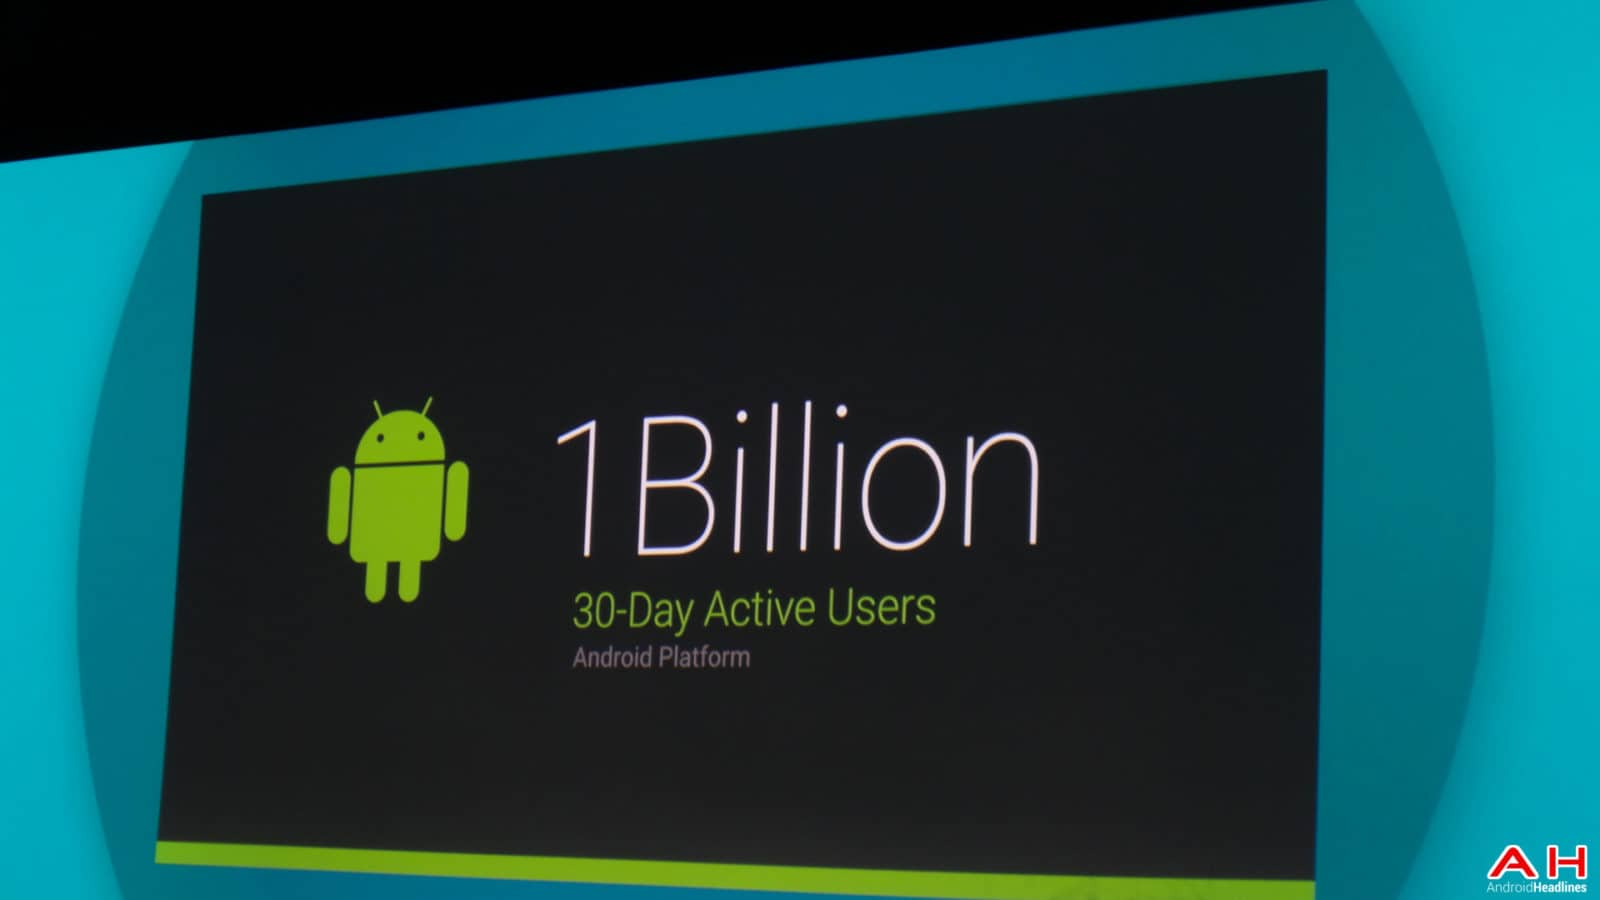 AH Google IO 2014 1 Billion Activations